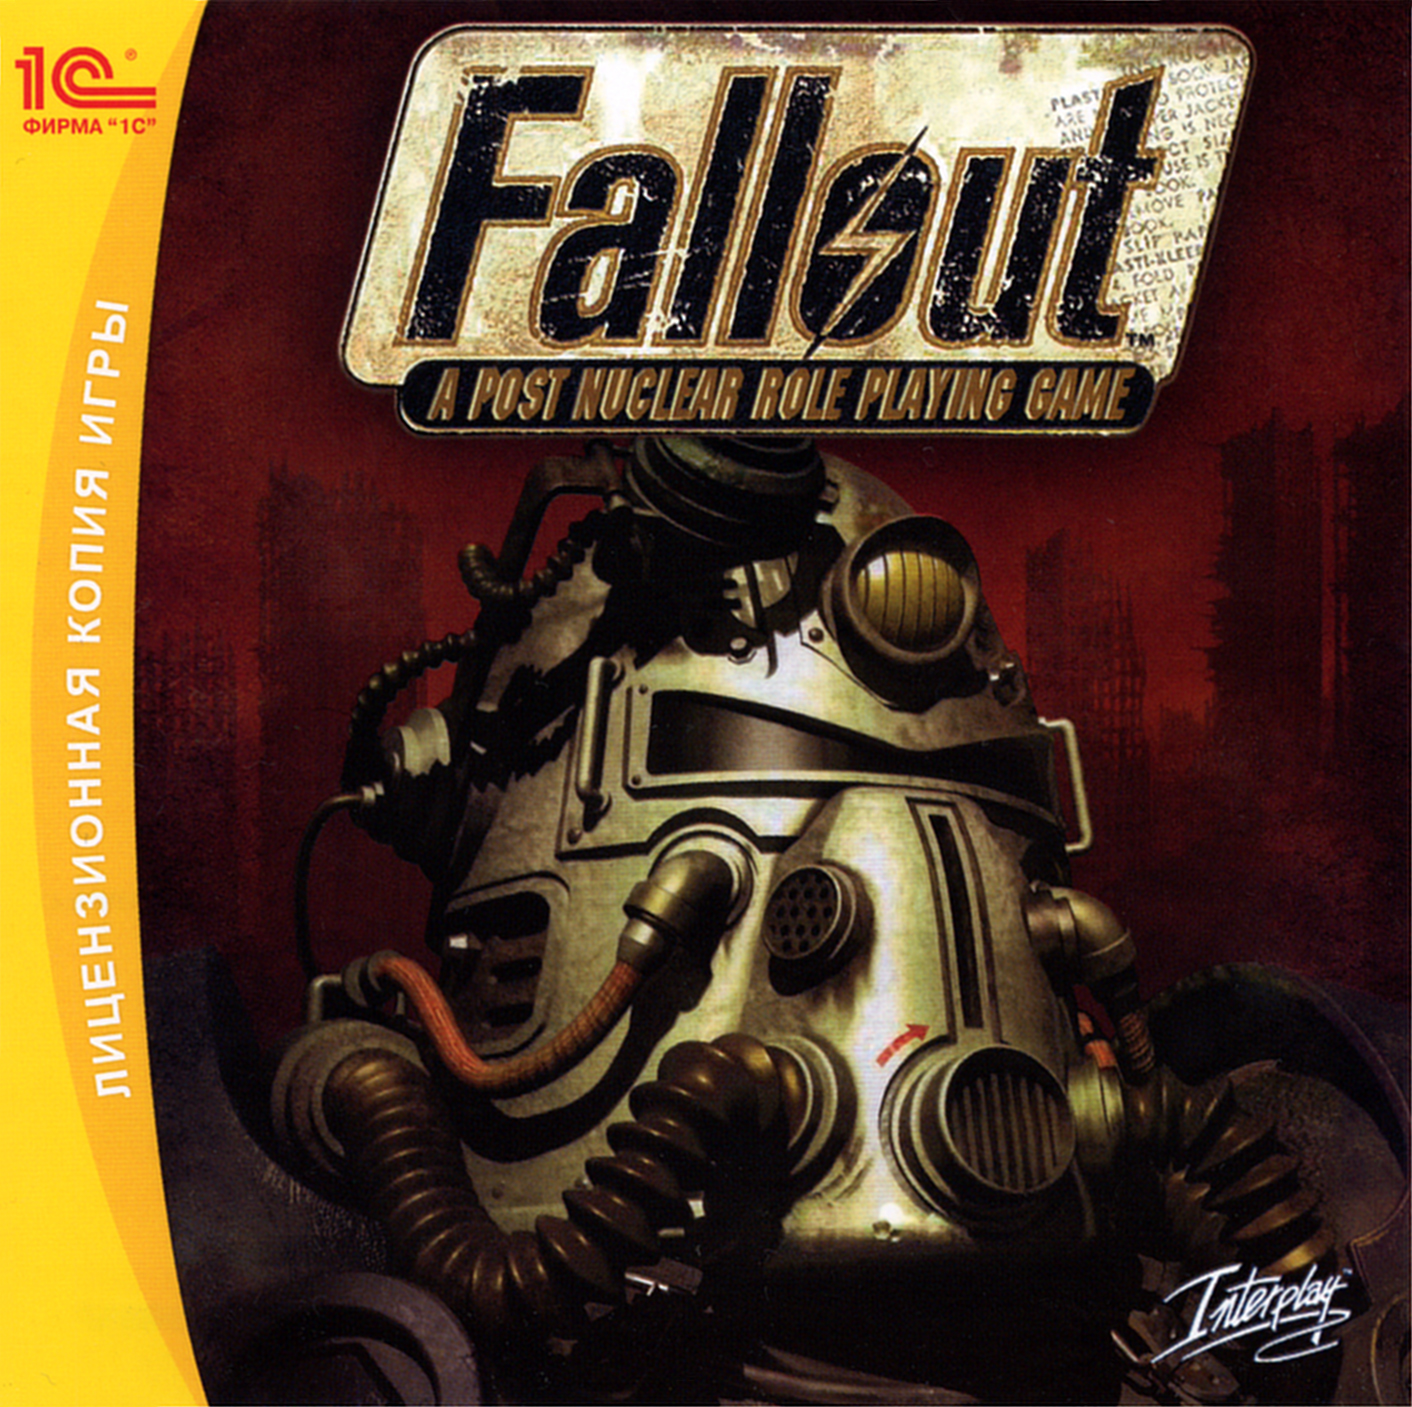 Fallout_ A Post Nuclear Role Playing Game2222.jpg]